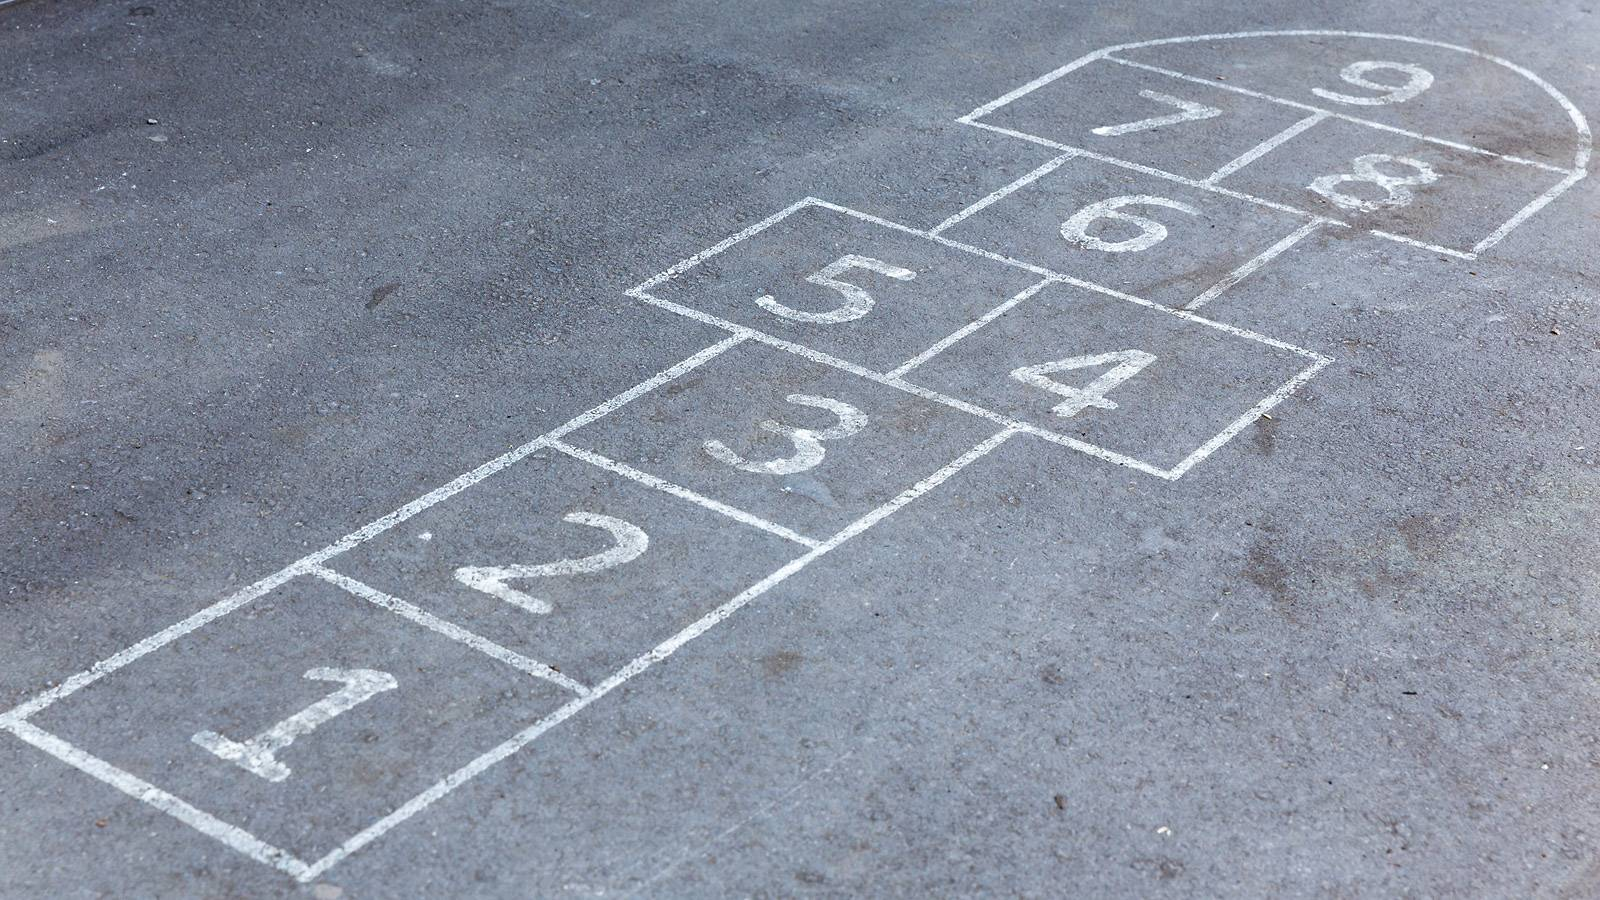 Kids--7-old-school-games-that'll-boost-junior's-skills-hopscotch